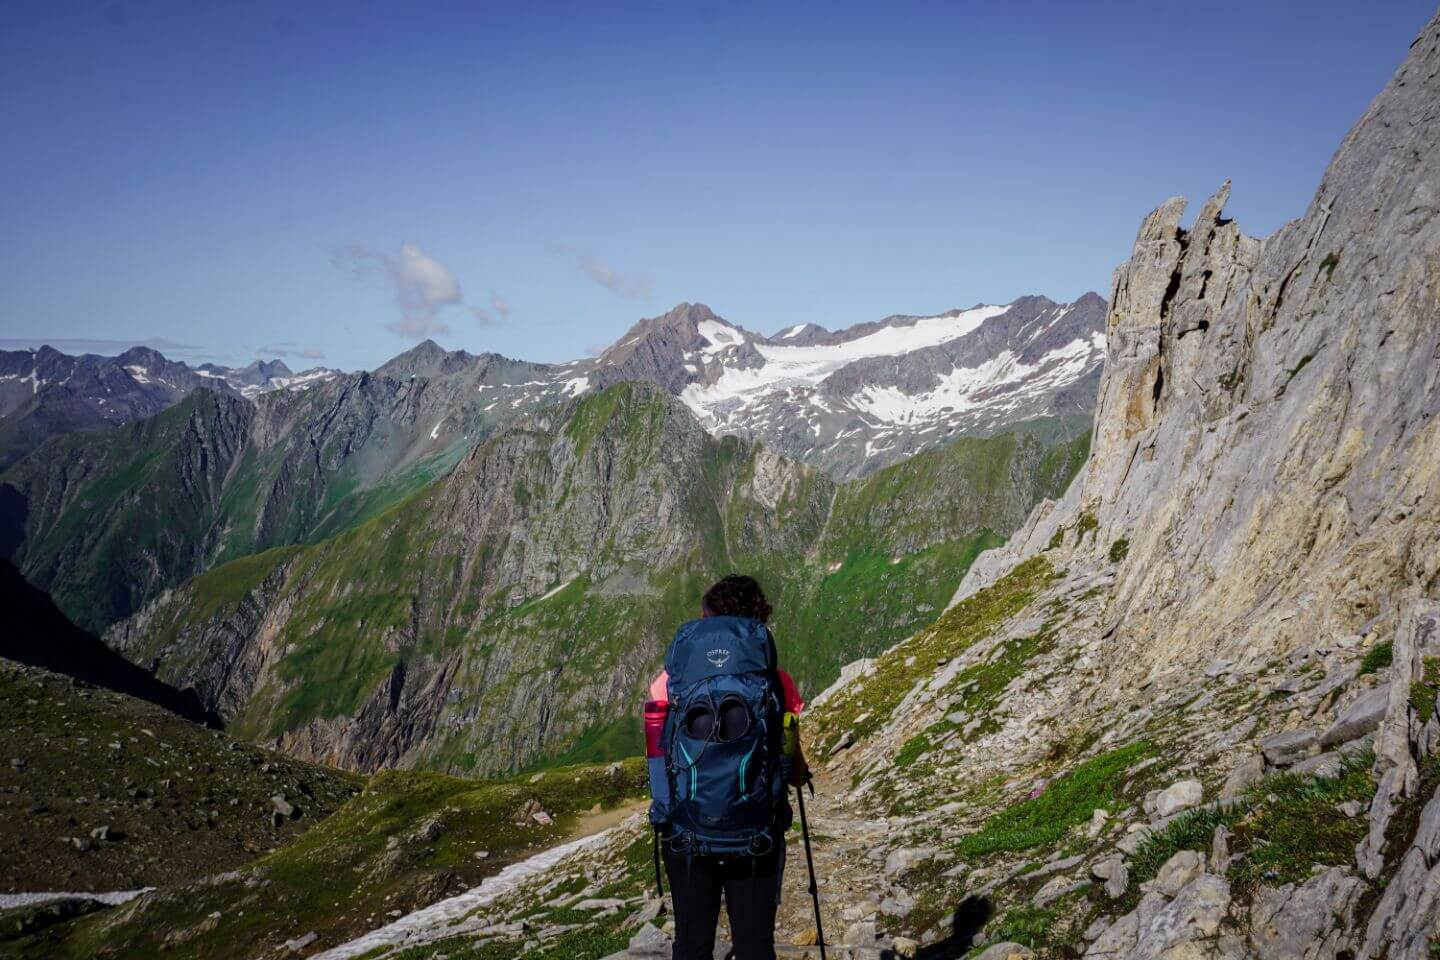 Hike up to Zopetscharte, Venediger High Trail, Hohe Tauern Trek, Austria